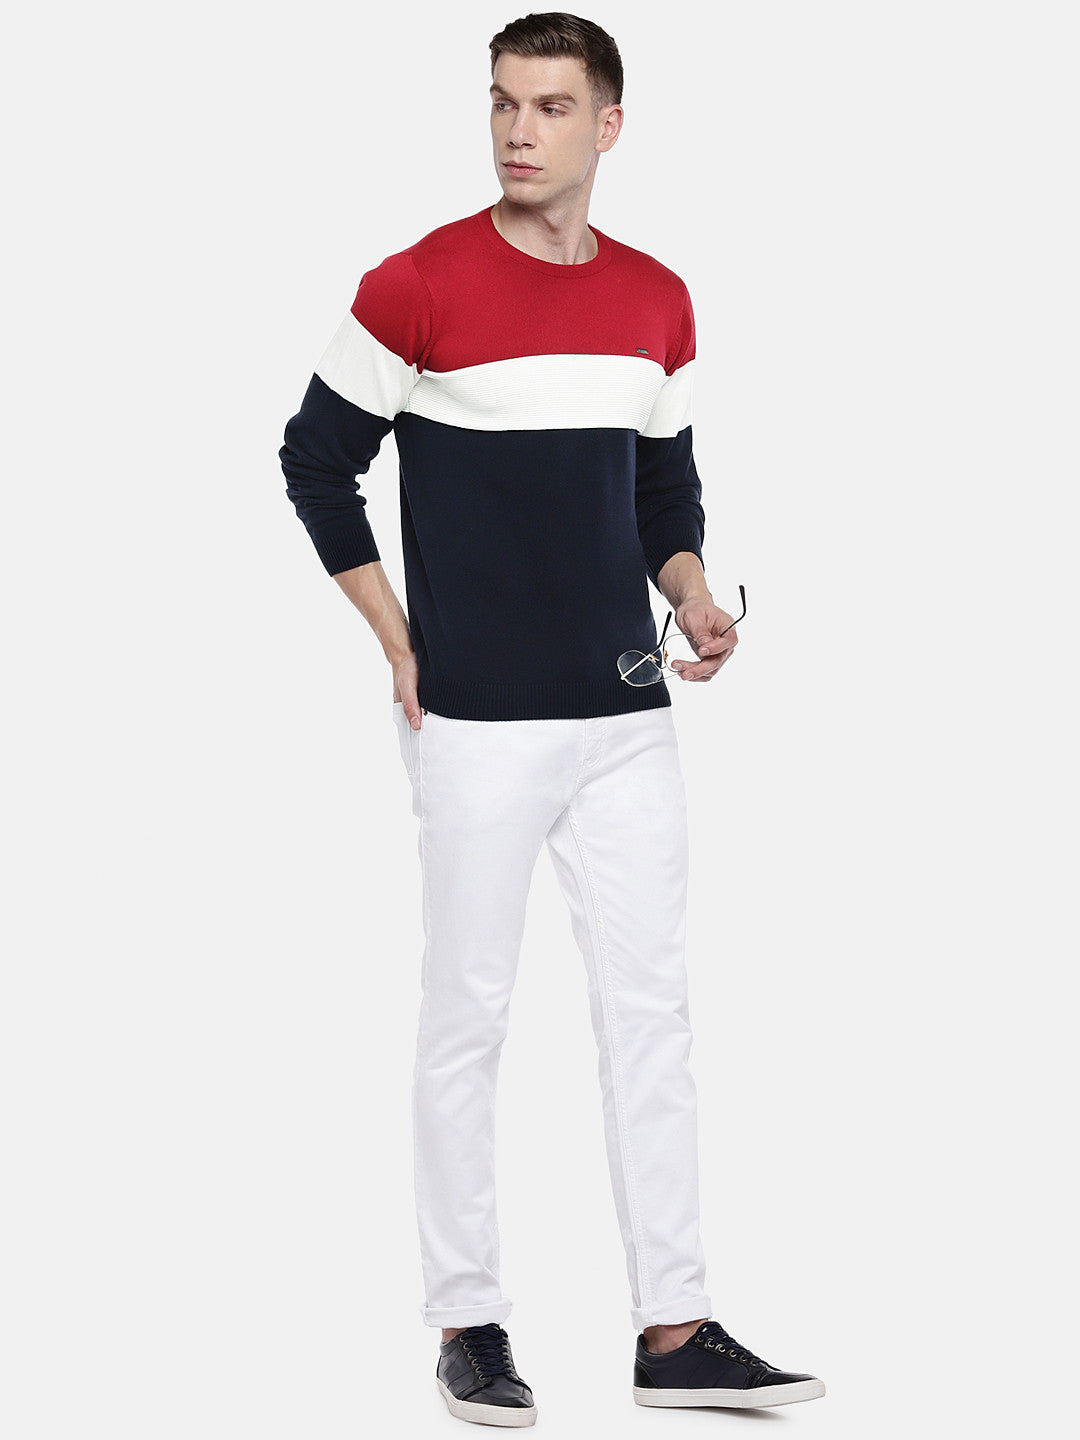 Navy Blue & Red Colourblocked Sweater-4